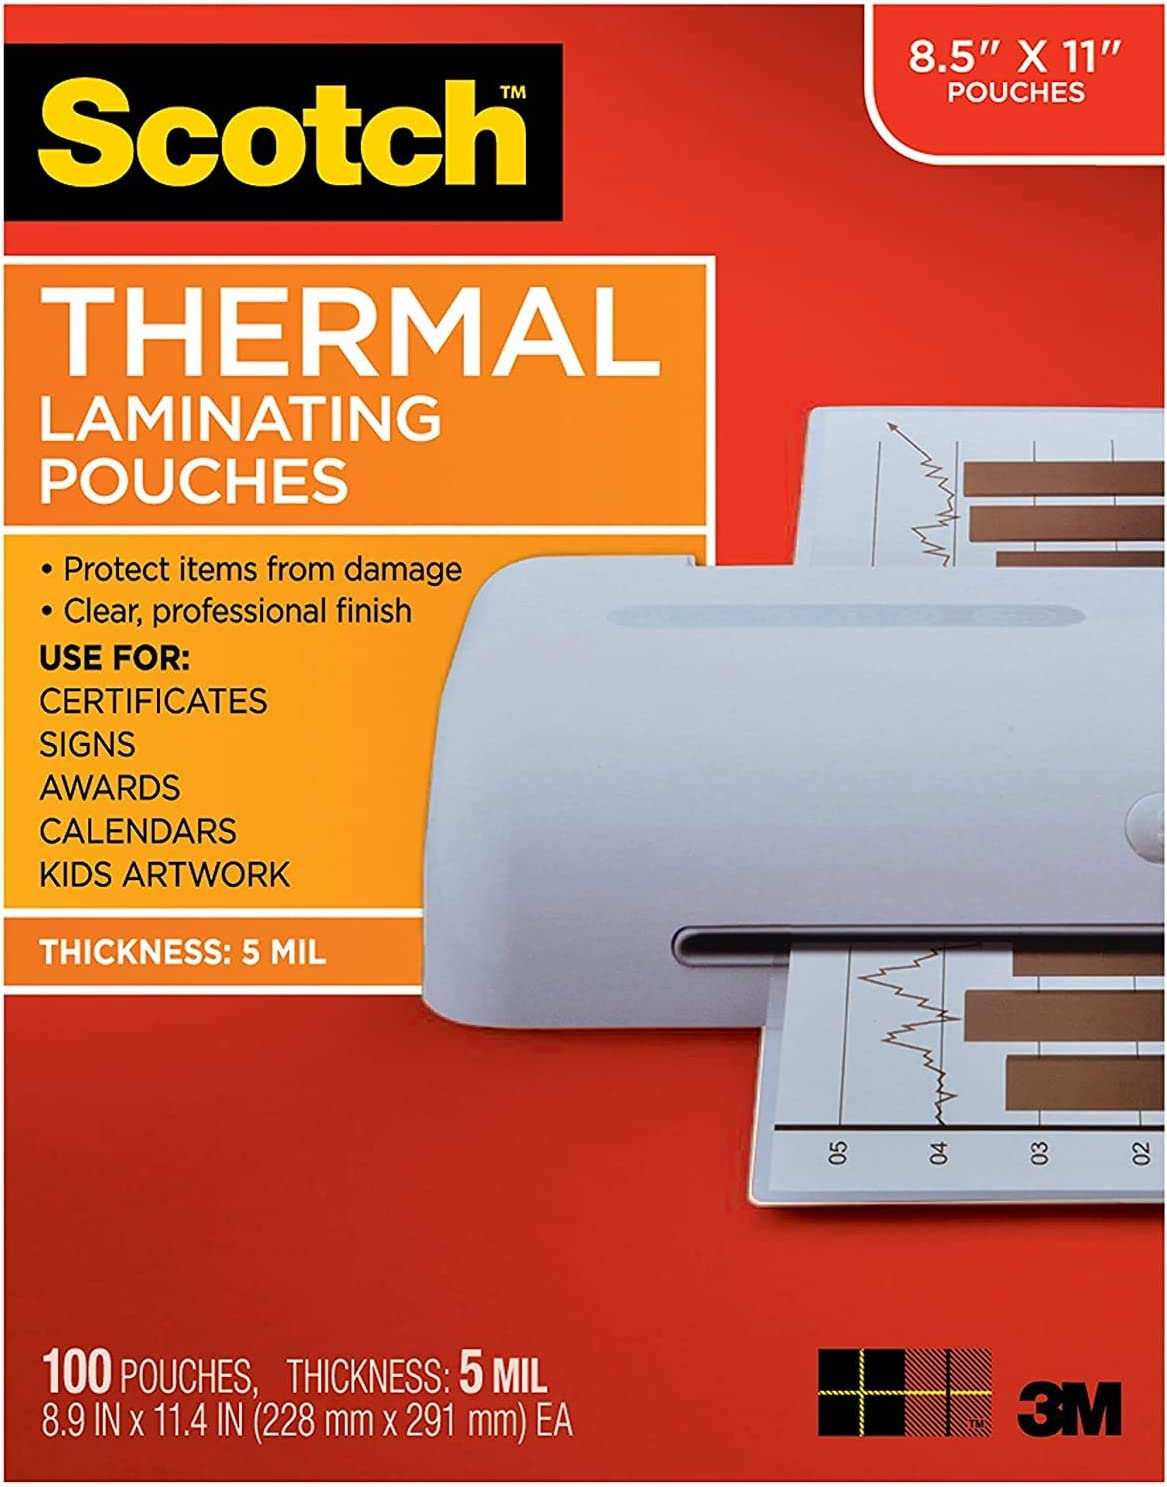 8.9 x 11.4 inches Limited Edition 5 Mil Thick for Extra Protection 100-Pack Scotch Brand Thermal Laminating Pouches Letter Size Sheets Clear TP5854-100